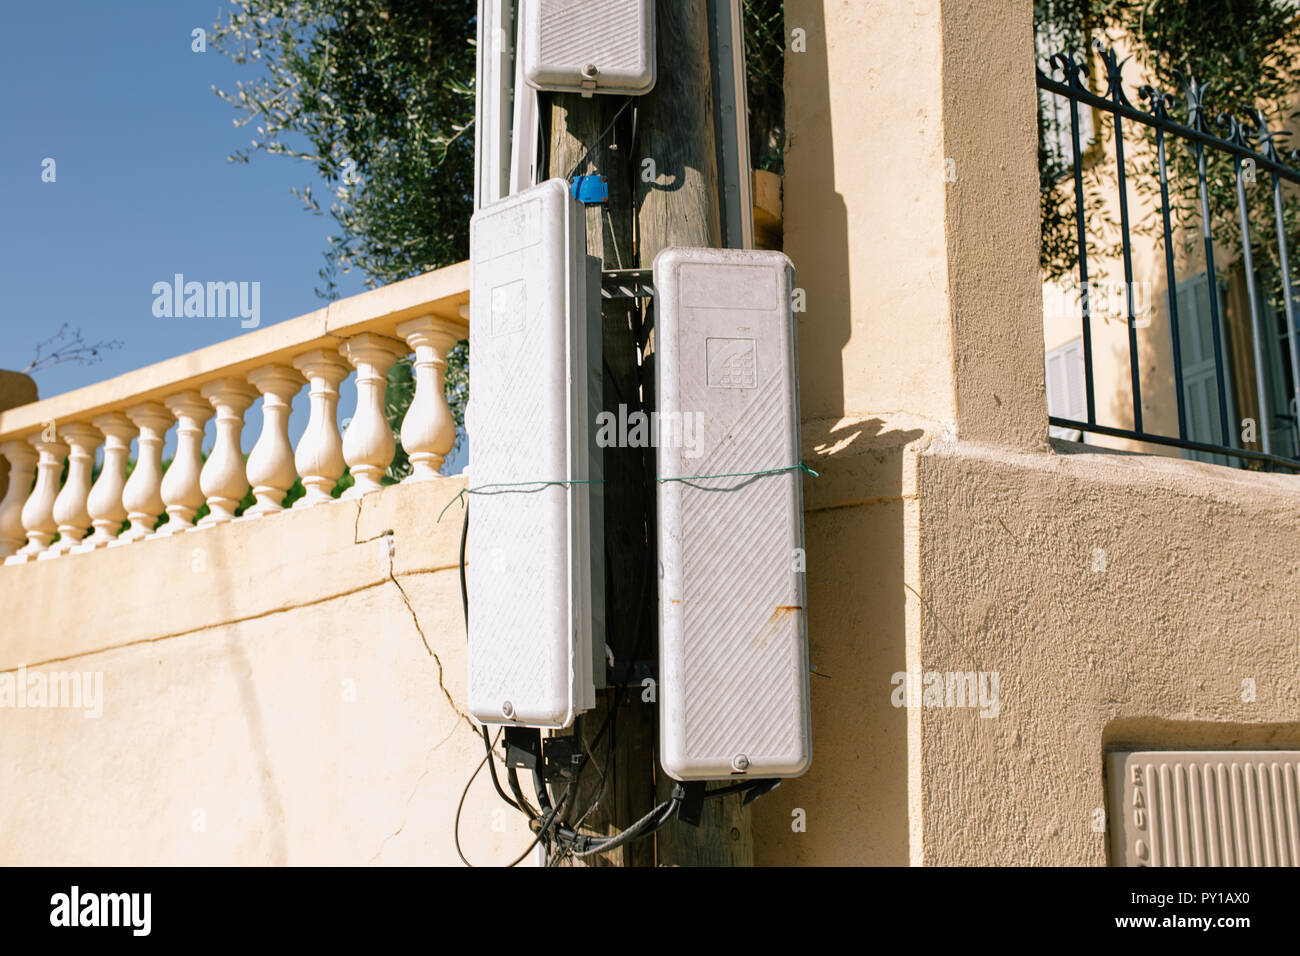 Telephone Antenna Repeater in southern France in the city of Nice - Stock Image